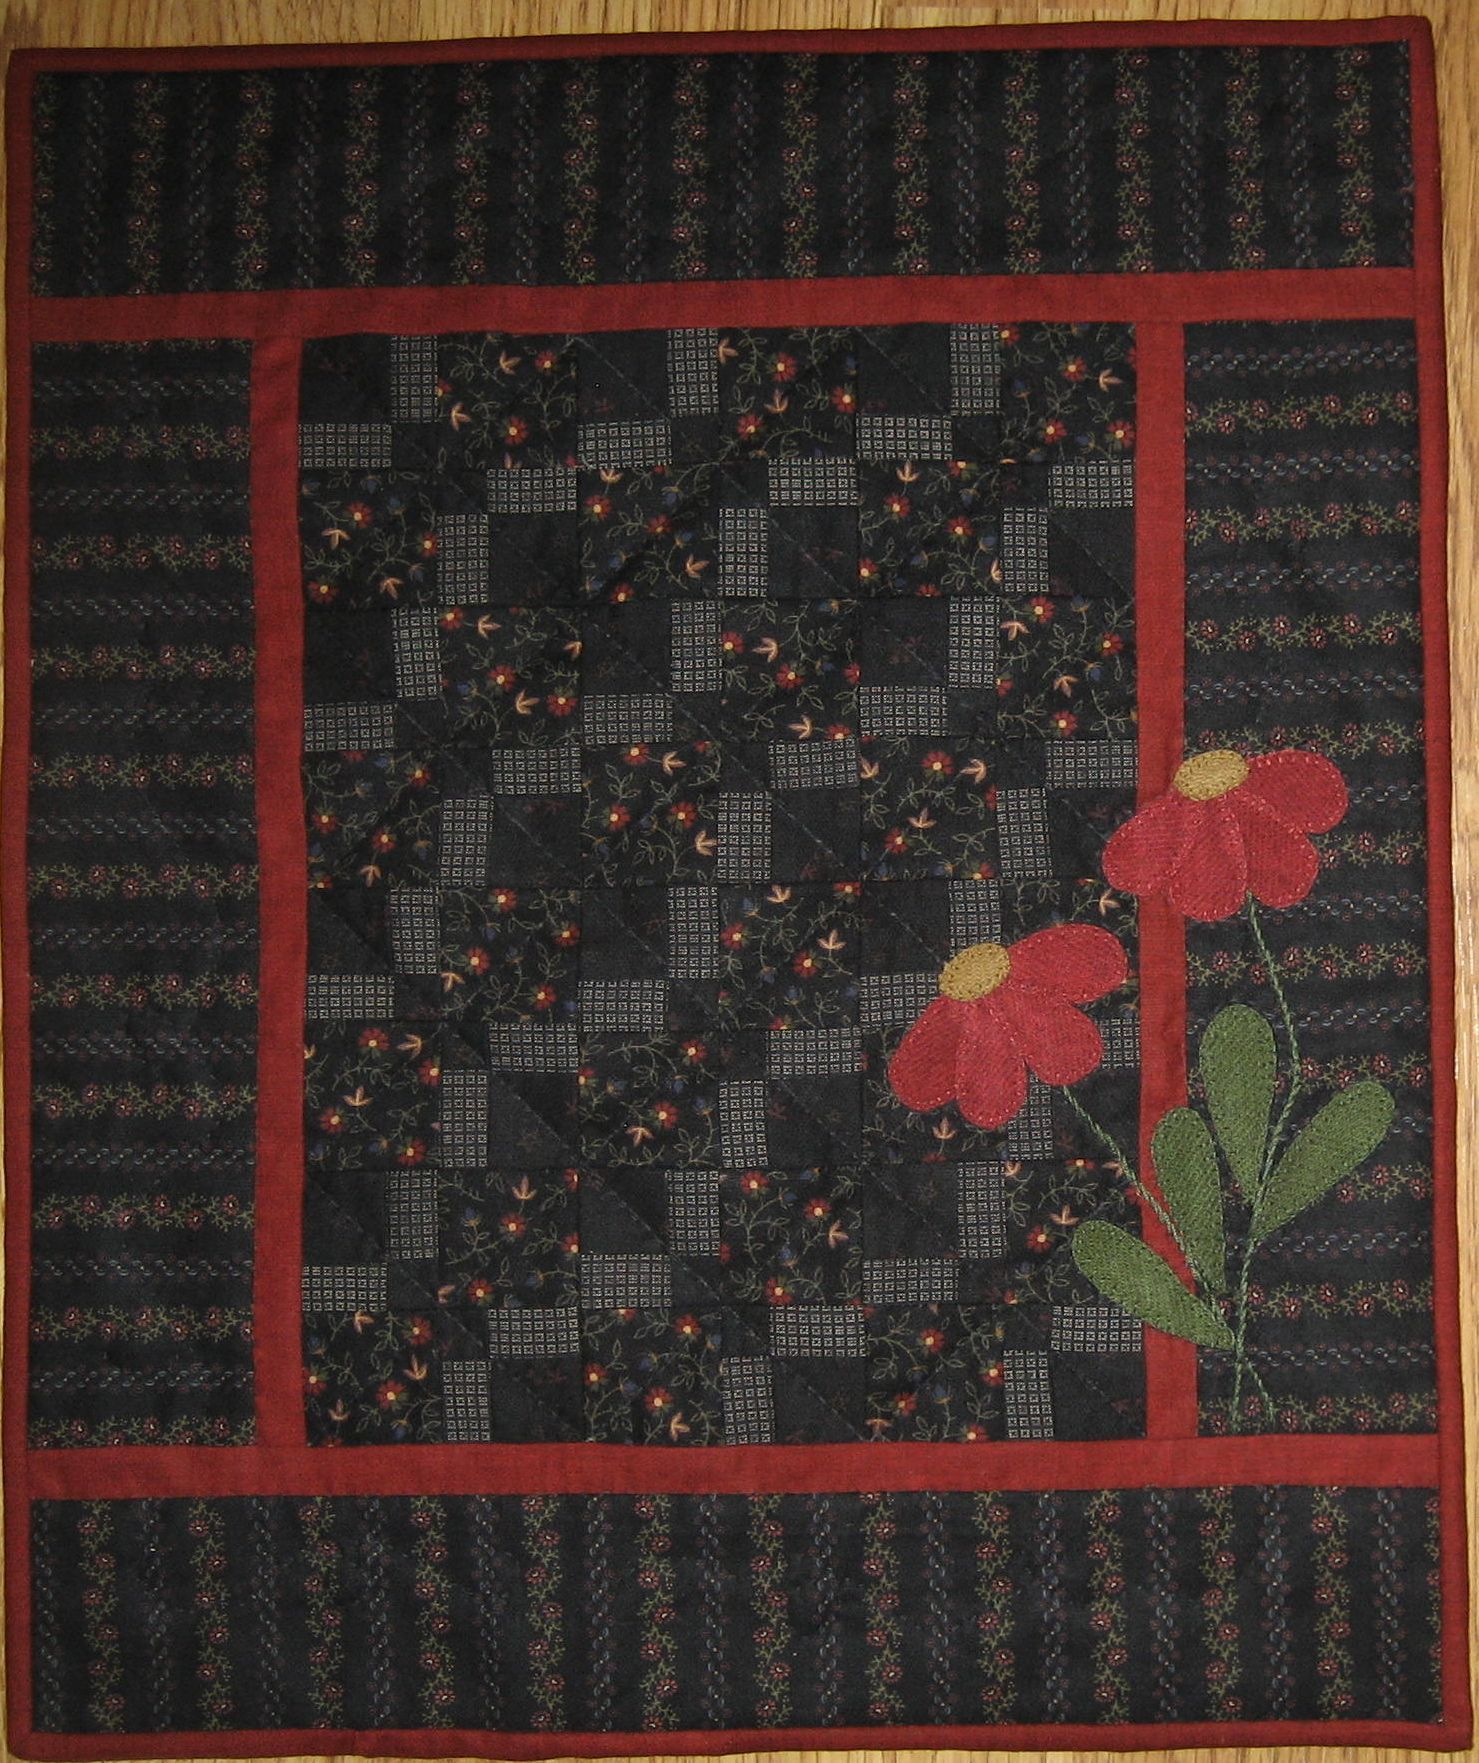 Midnight Blooms - Red Button Quilt Co. | Quilts | Pinterest | Mini ... : red button quilt co - Adamdwight.com